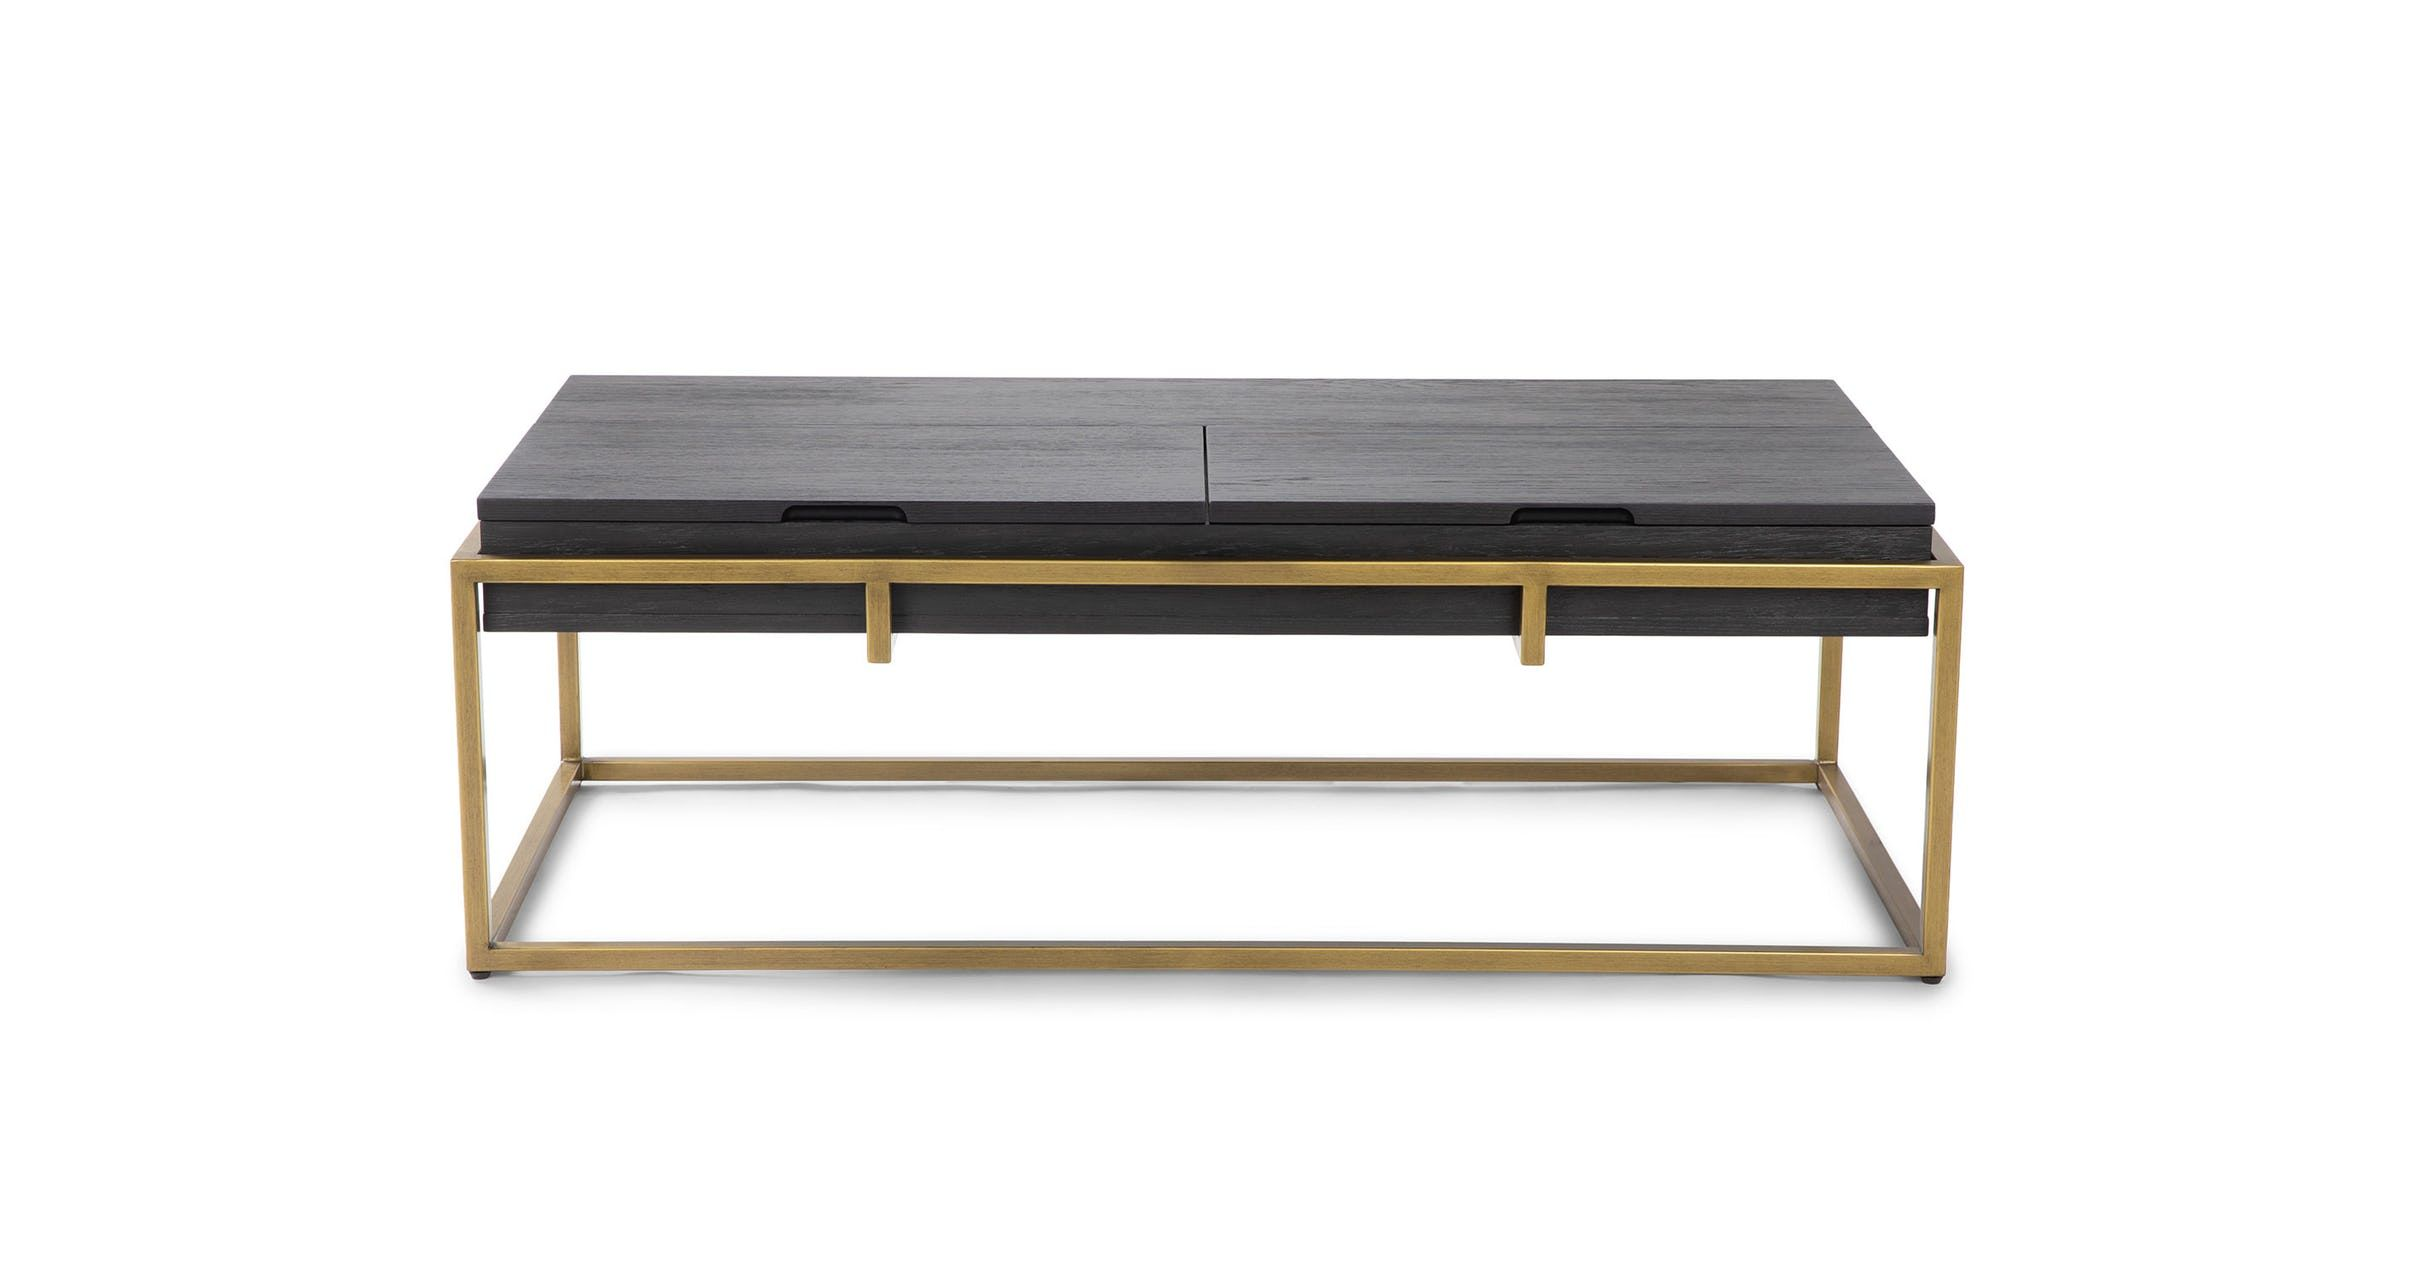 Oscuro Black Storage Coffee Table Coffee Tables Article Modern Mid Century And Sc Mid Century Modern Coffee Table Coffee Table Coffee Table With Storage [ 1262 x 2432 Pixel ]